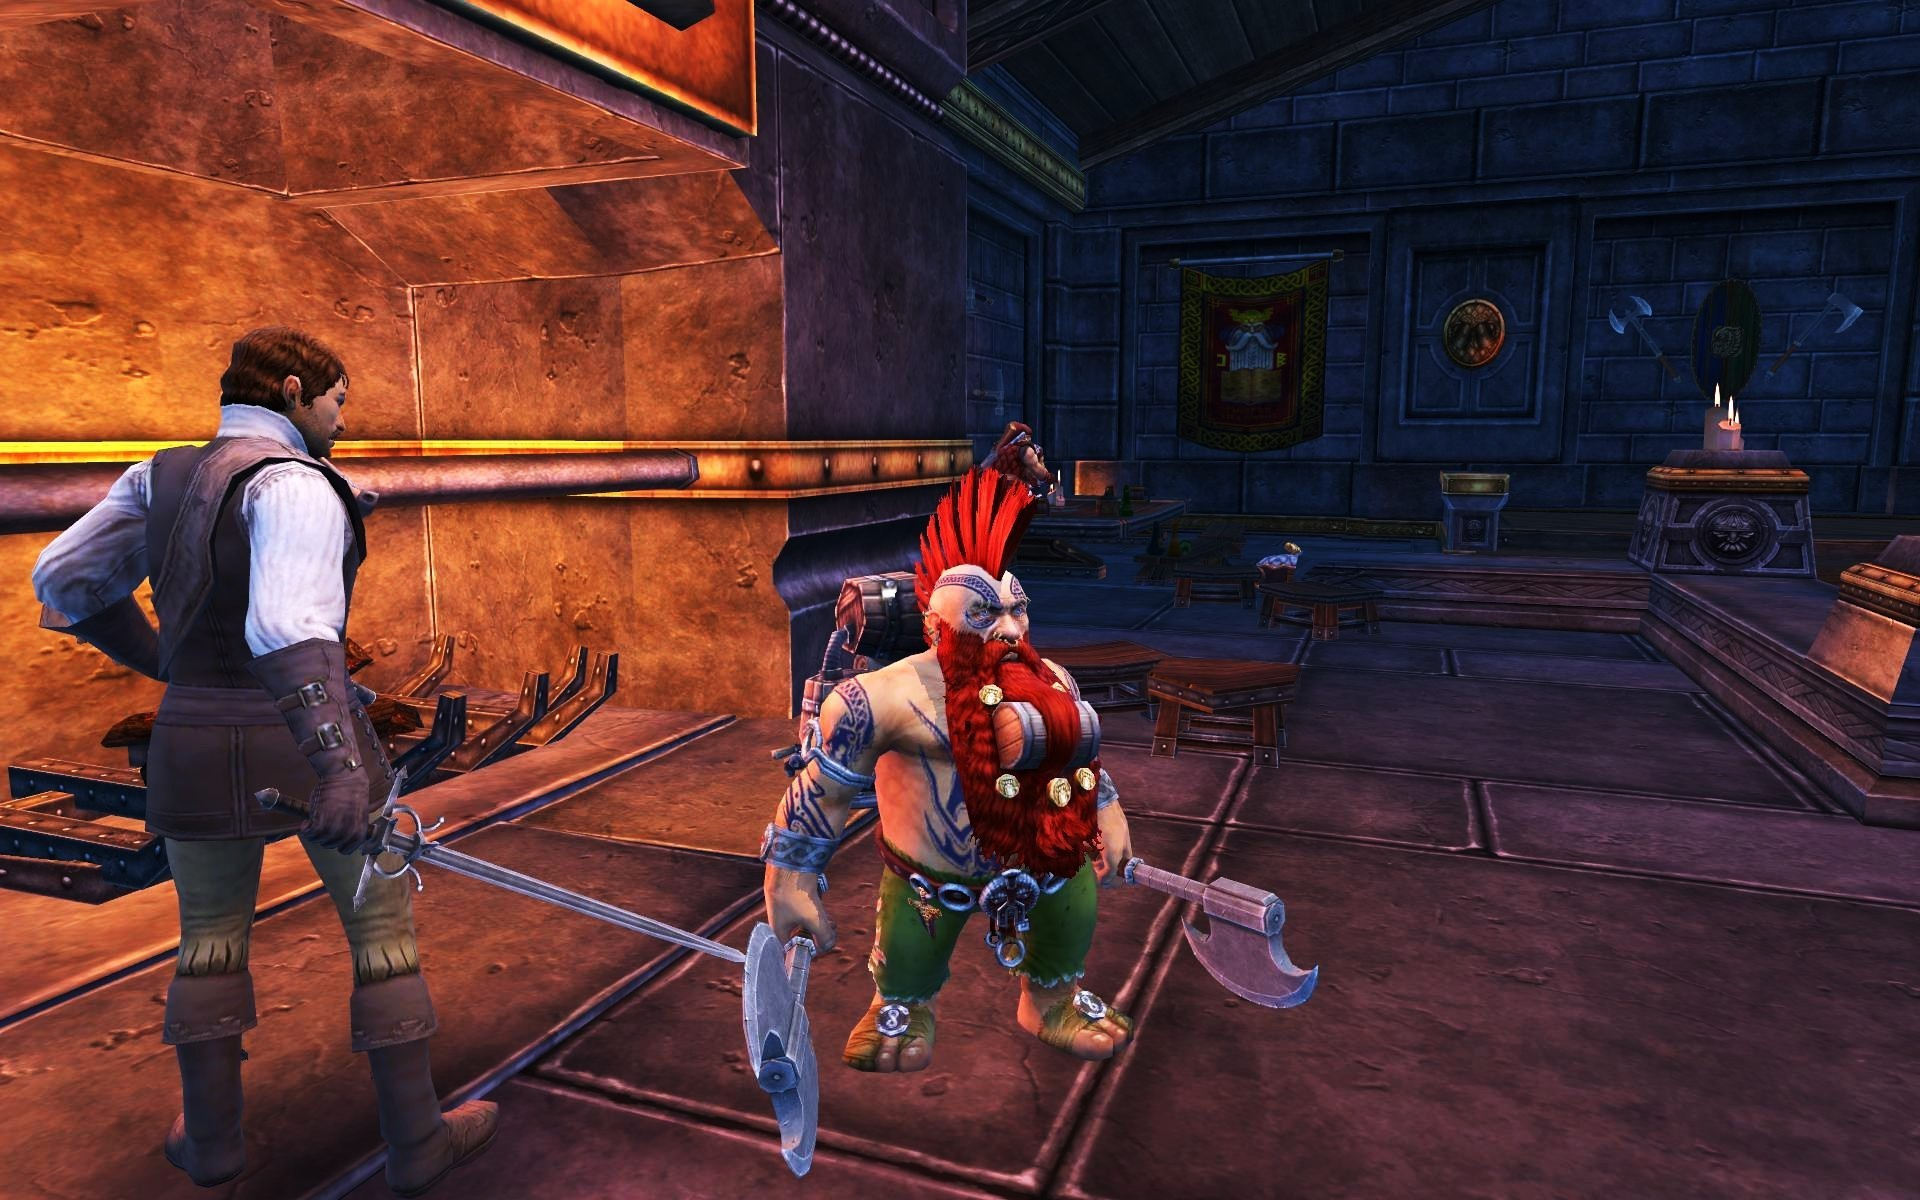 Warhammer Online: Age of Reckoning - Grimtarok the walking tavern. Return to WAR after the Slayer release.